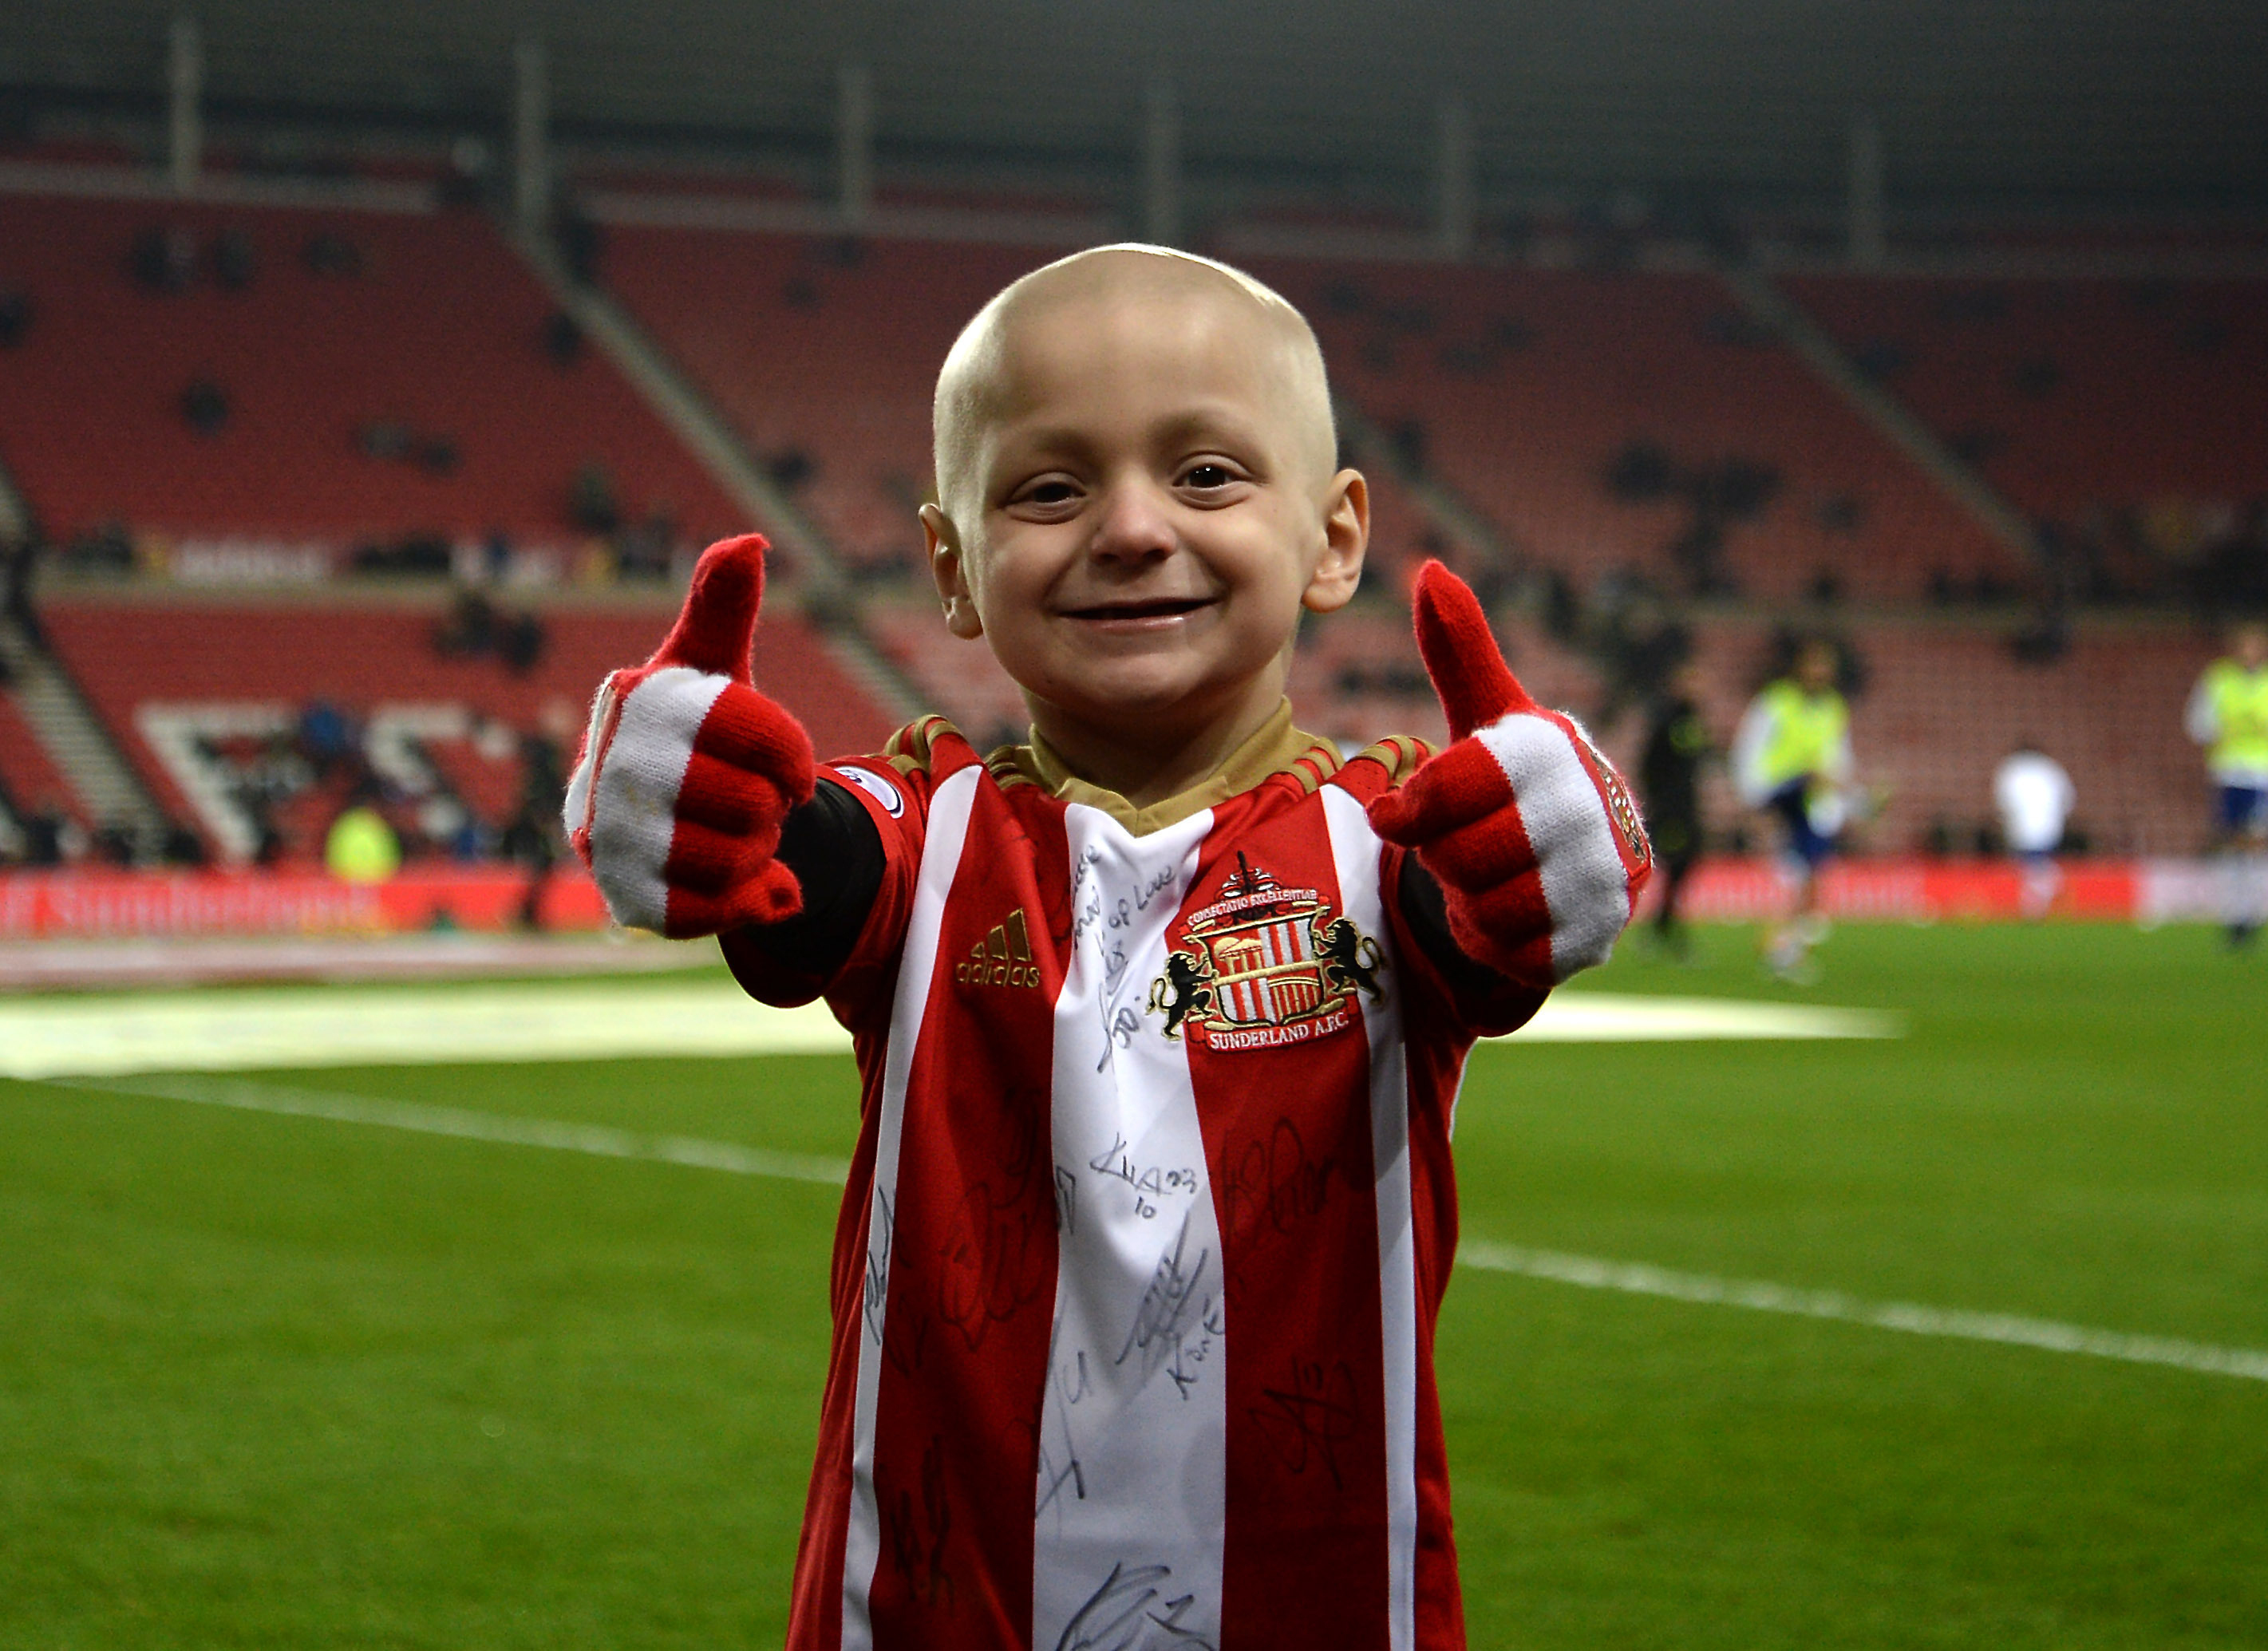 Bradley Lowery, the six-year-old football mascot.